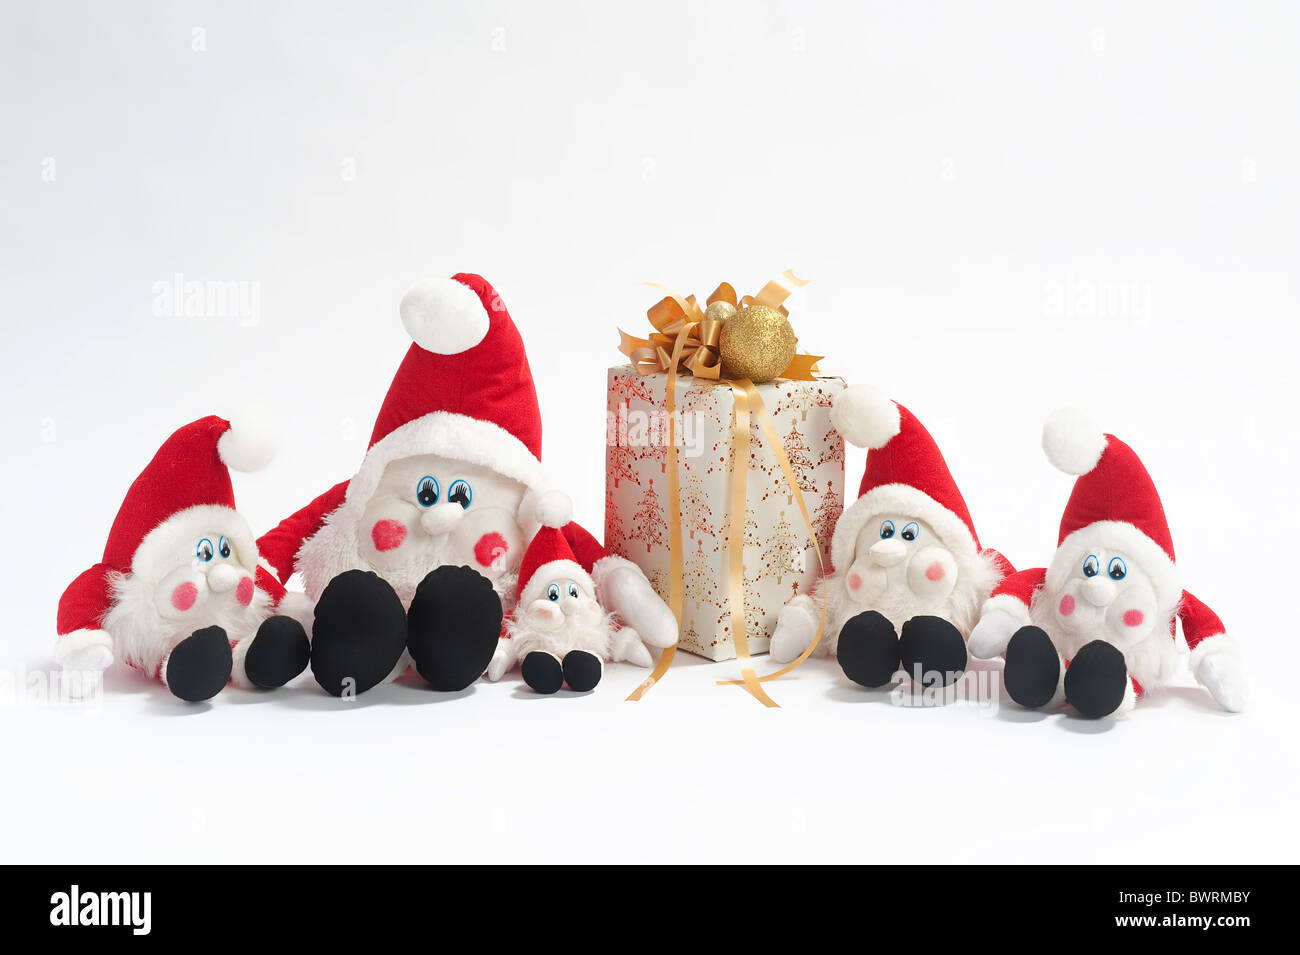 Gnomes On Holiday Stock Photos & Gnomes On Holiday Stock Images - Alamy